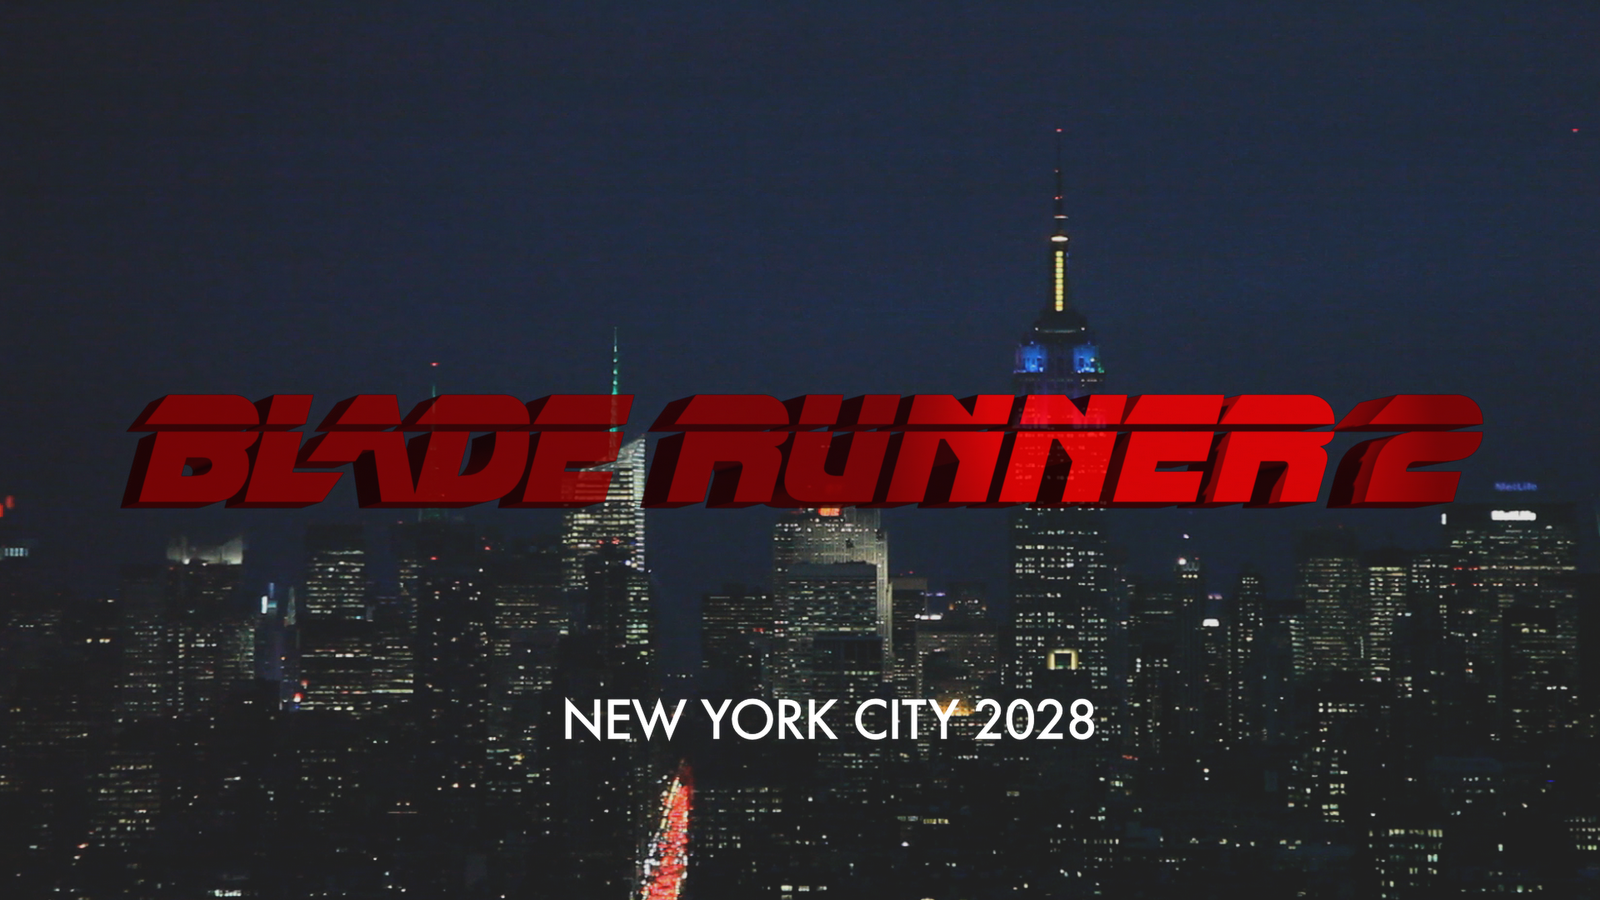 BLADE RUNNER 2 TRAILOR Title